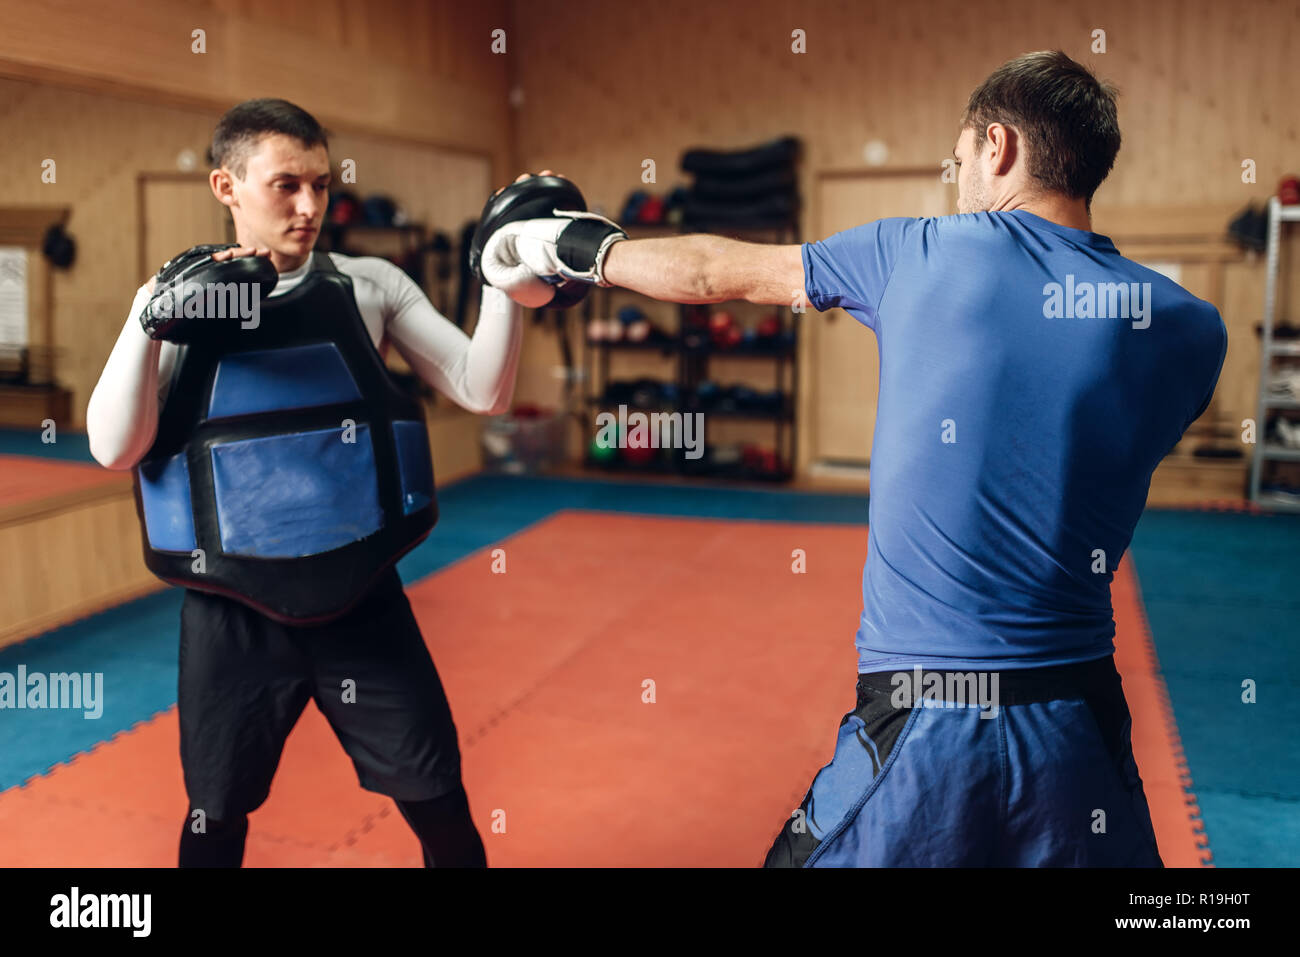 Male kickboxer in gloves practicing hand punch with a personal trainer in pads, workout in gym. Boxer on training, kickboxing practice Stock Photo